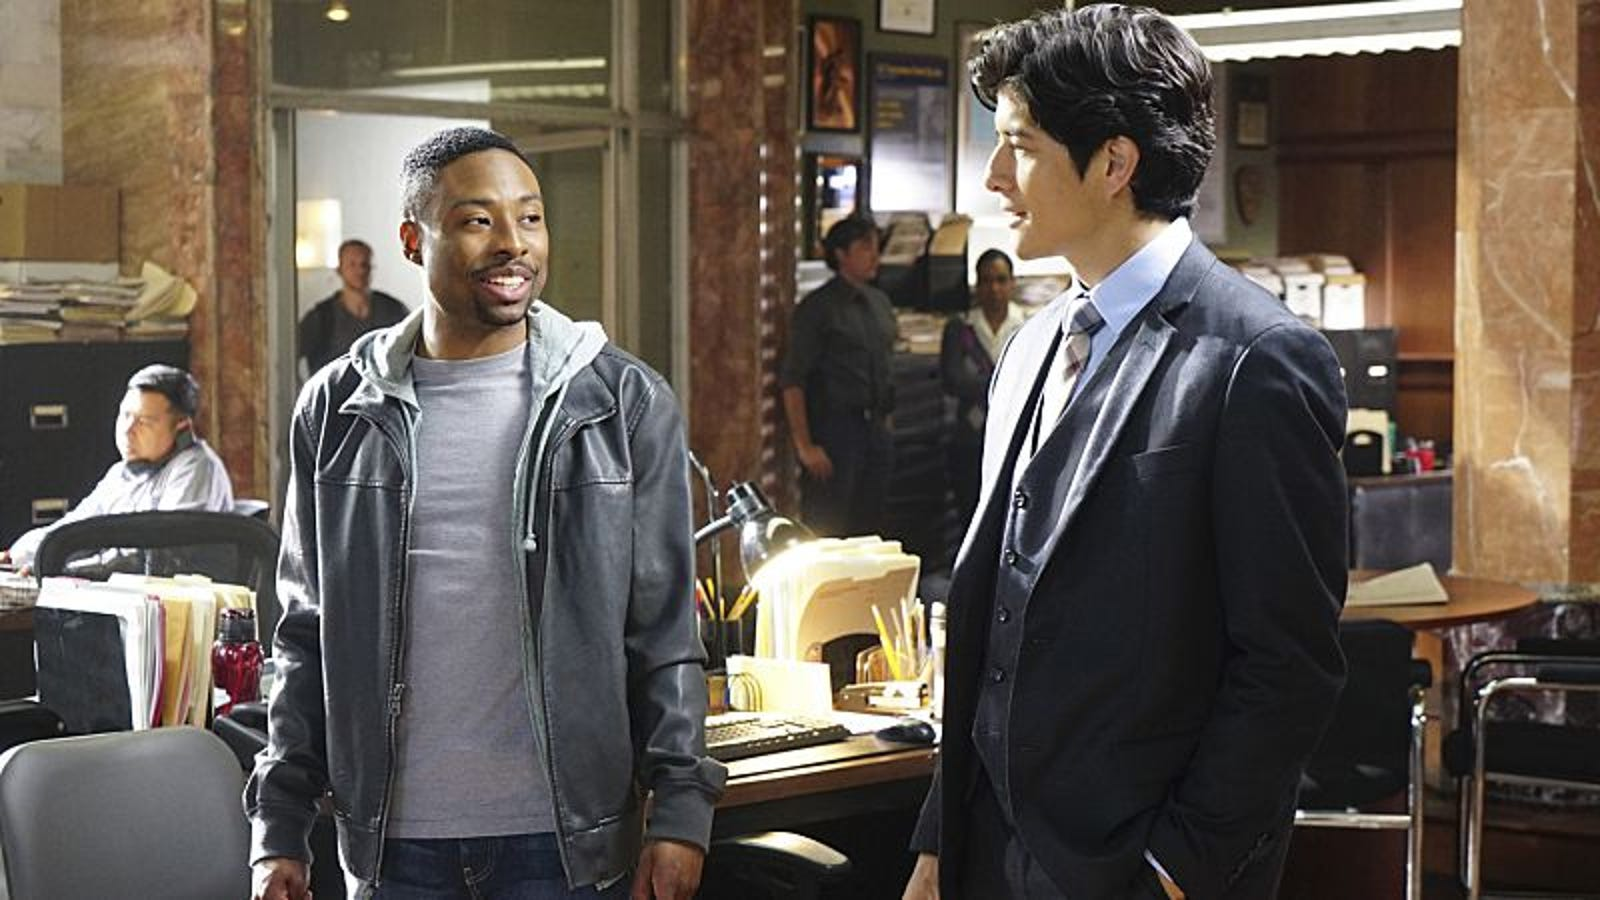 Despite Its Source Material Rush Hour Lacks Identity And Urgency